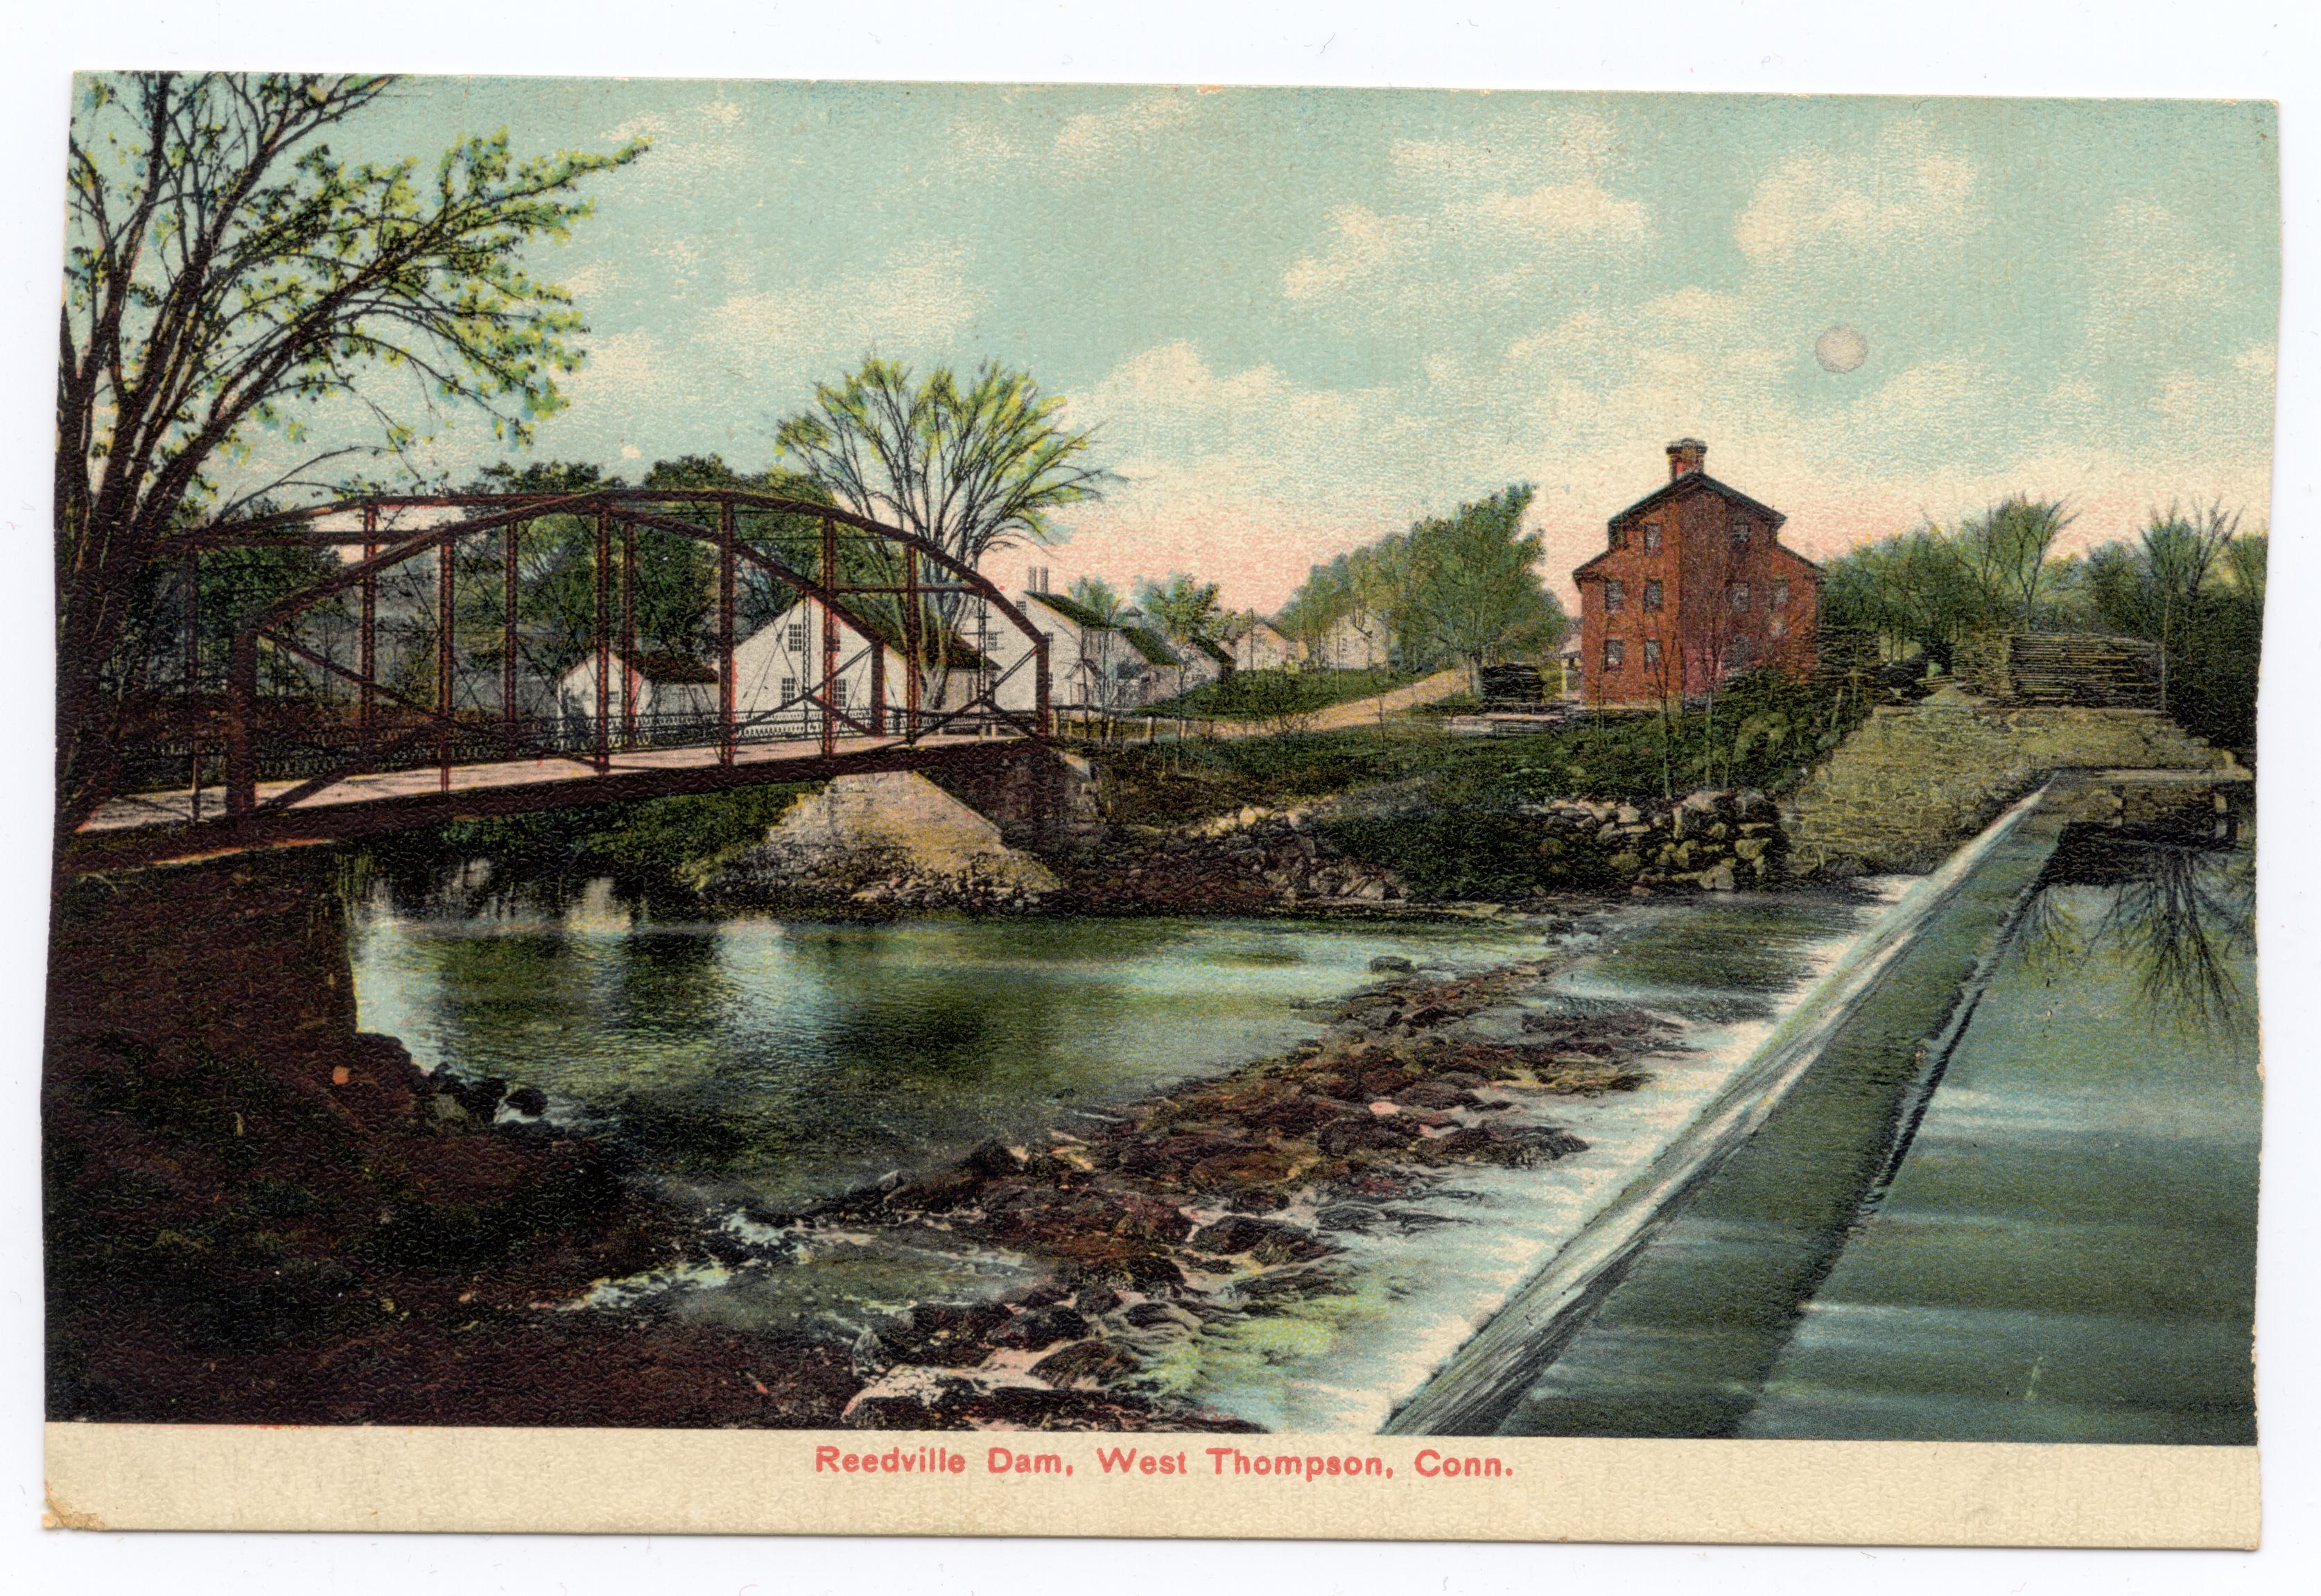 Reedville Dam, West Thompson, CT late 1800s